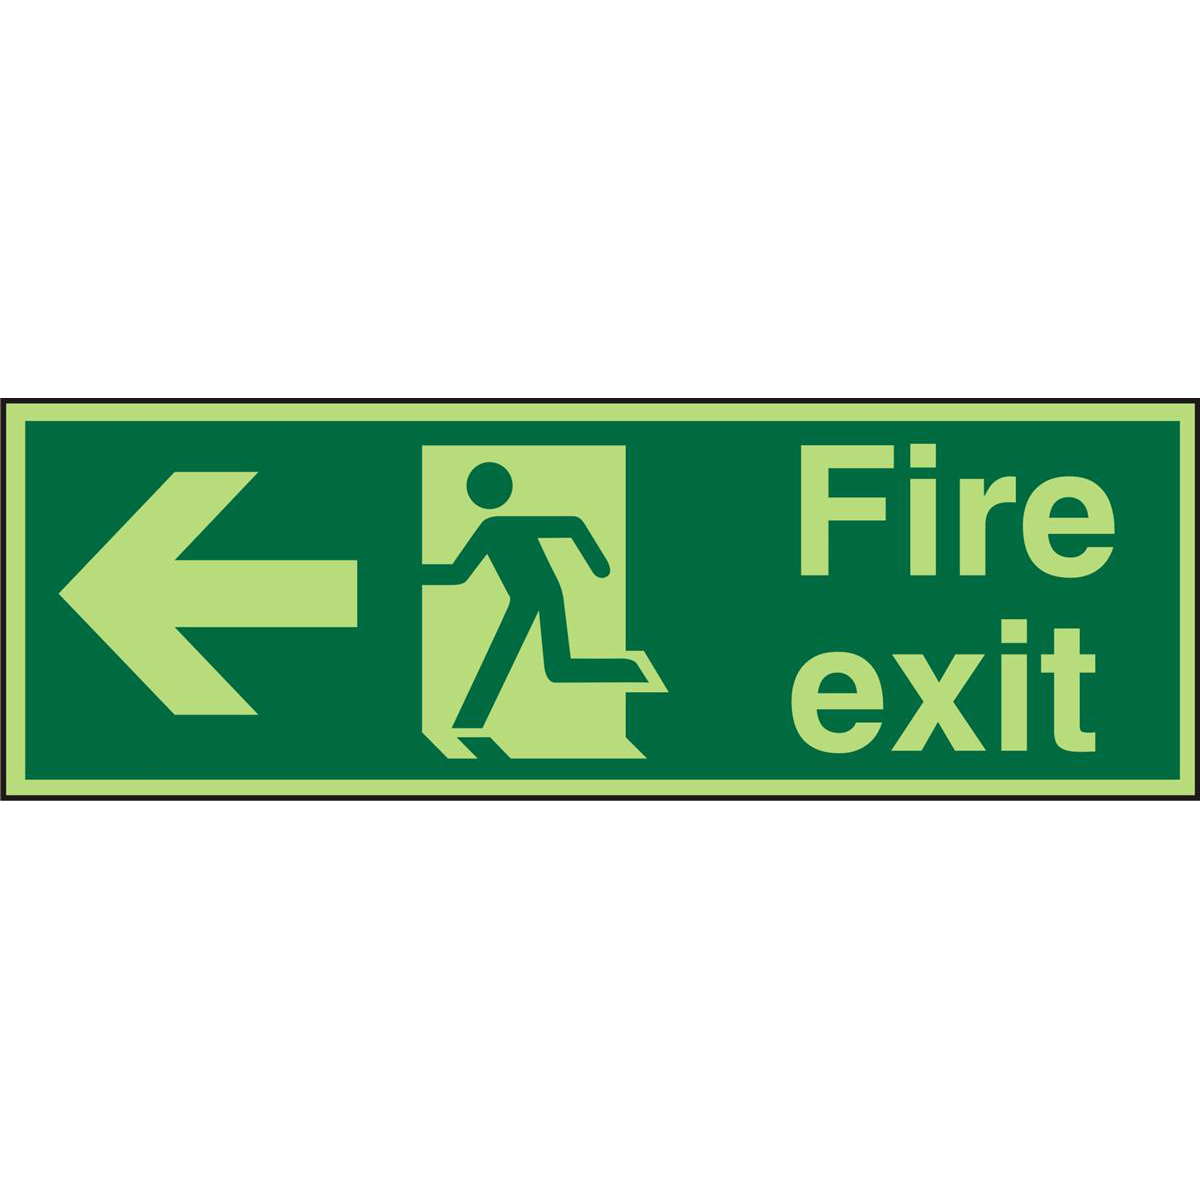 Photolum Sign 2mm 300x100 FireExit Man Running&Arrow Left Ref PACSP120300x100 Up to 10 Day Leadtime